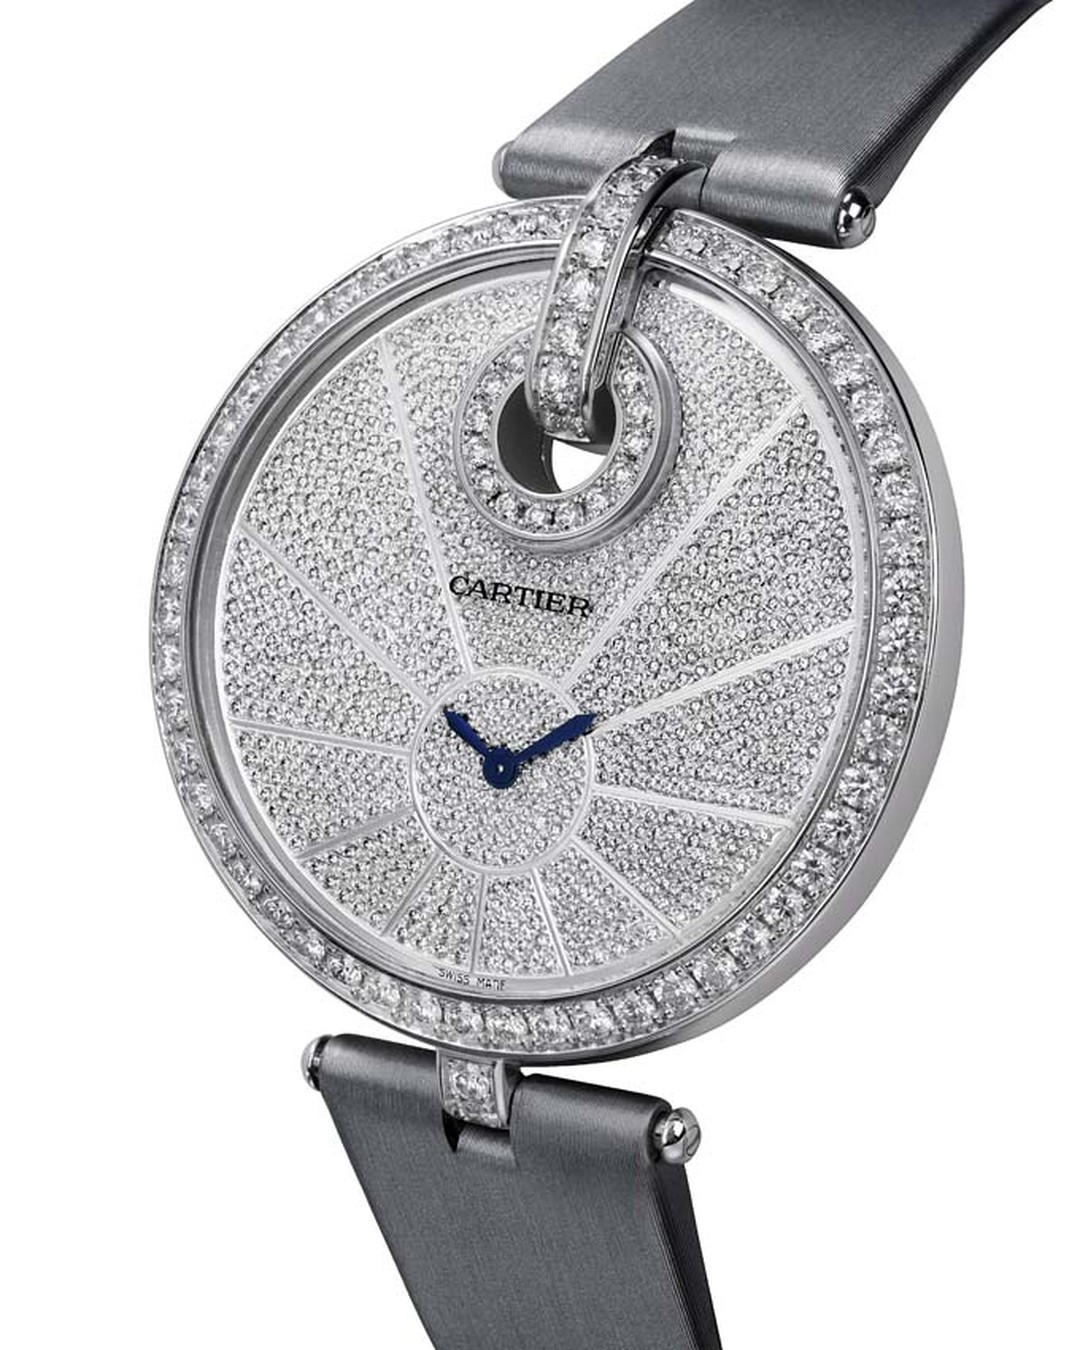 Cartier's Captive watch in white gold with diamonds